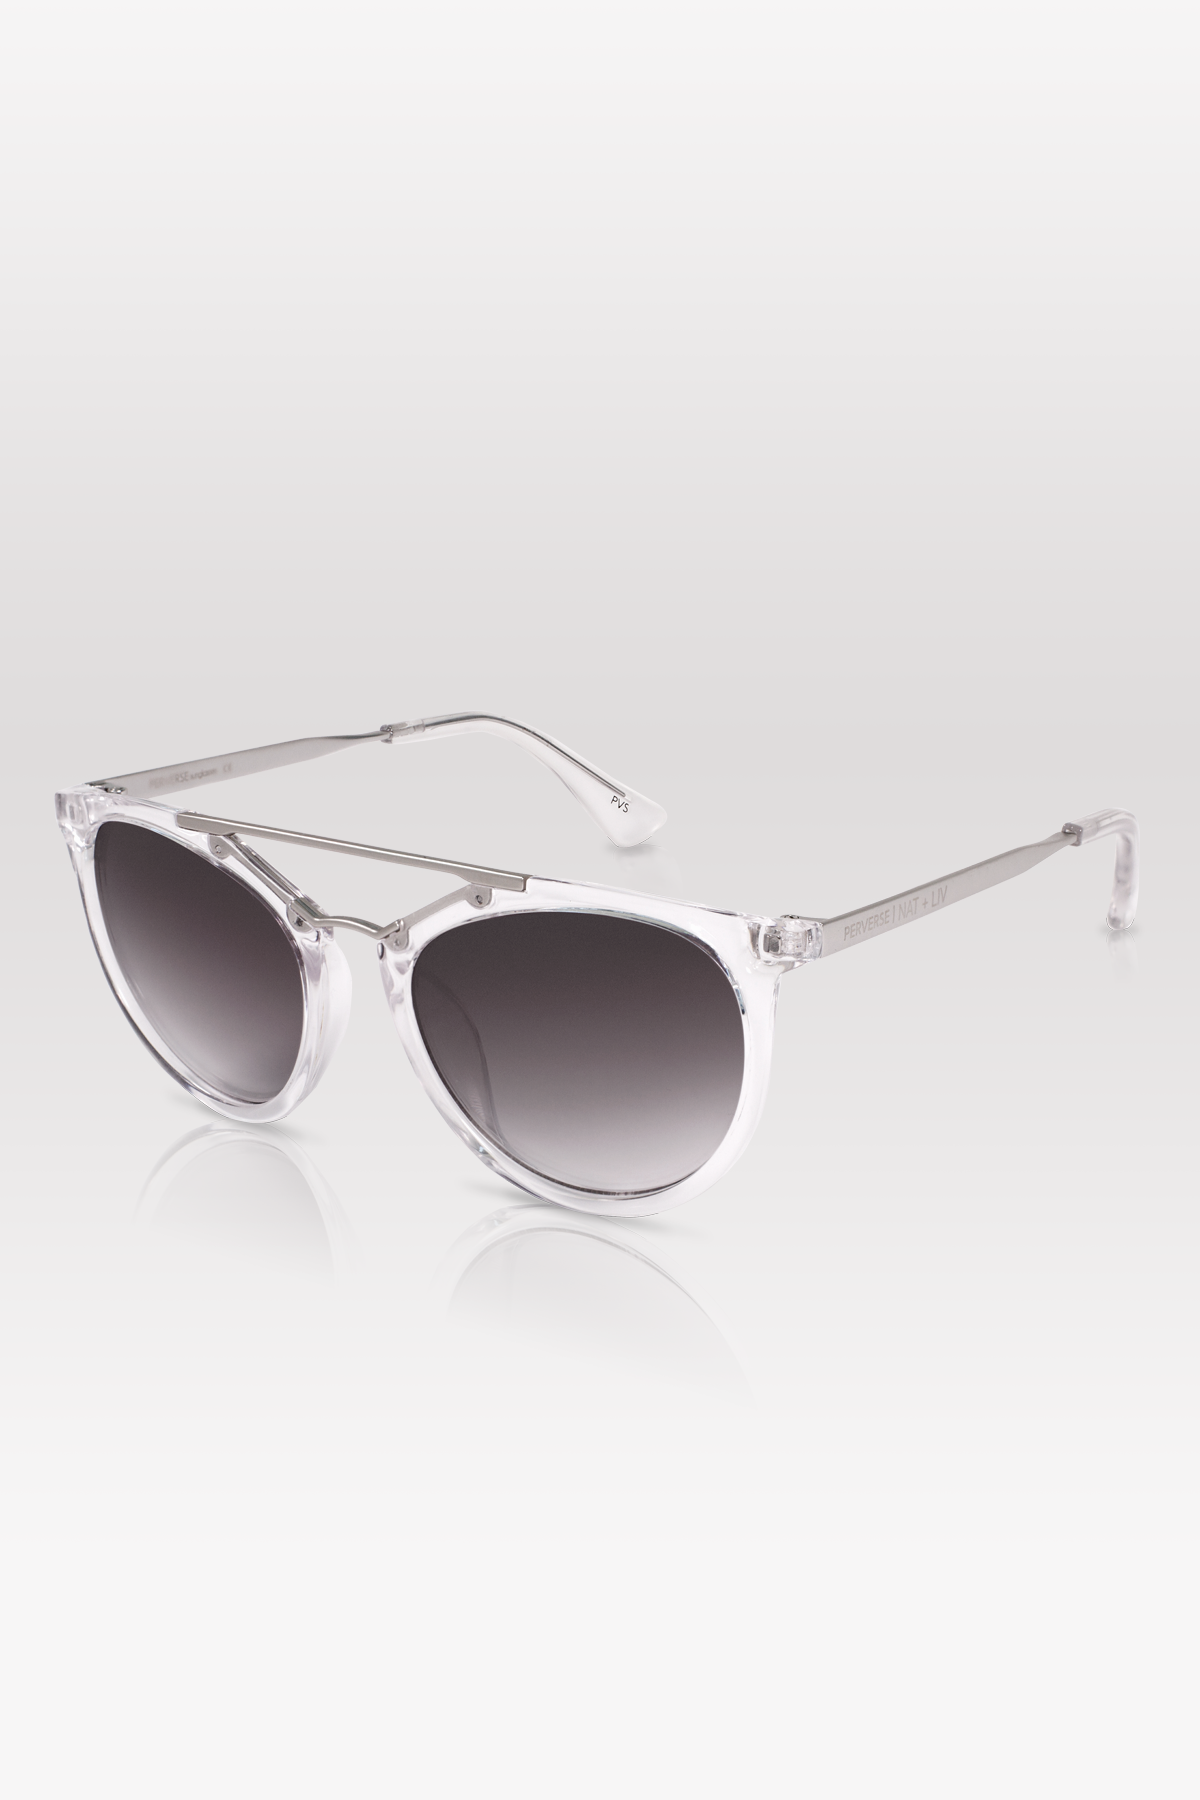 01-Clear: Transparent frames, brushed silver double brow bar, black gradient lenses.